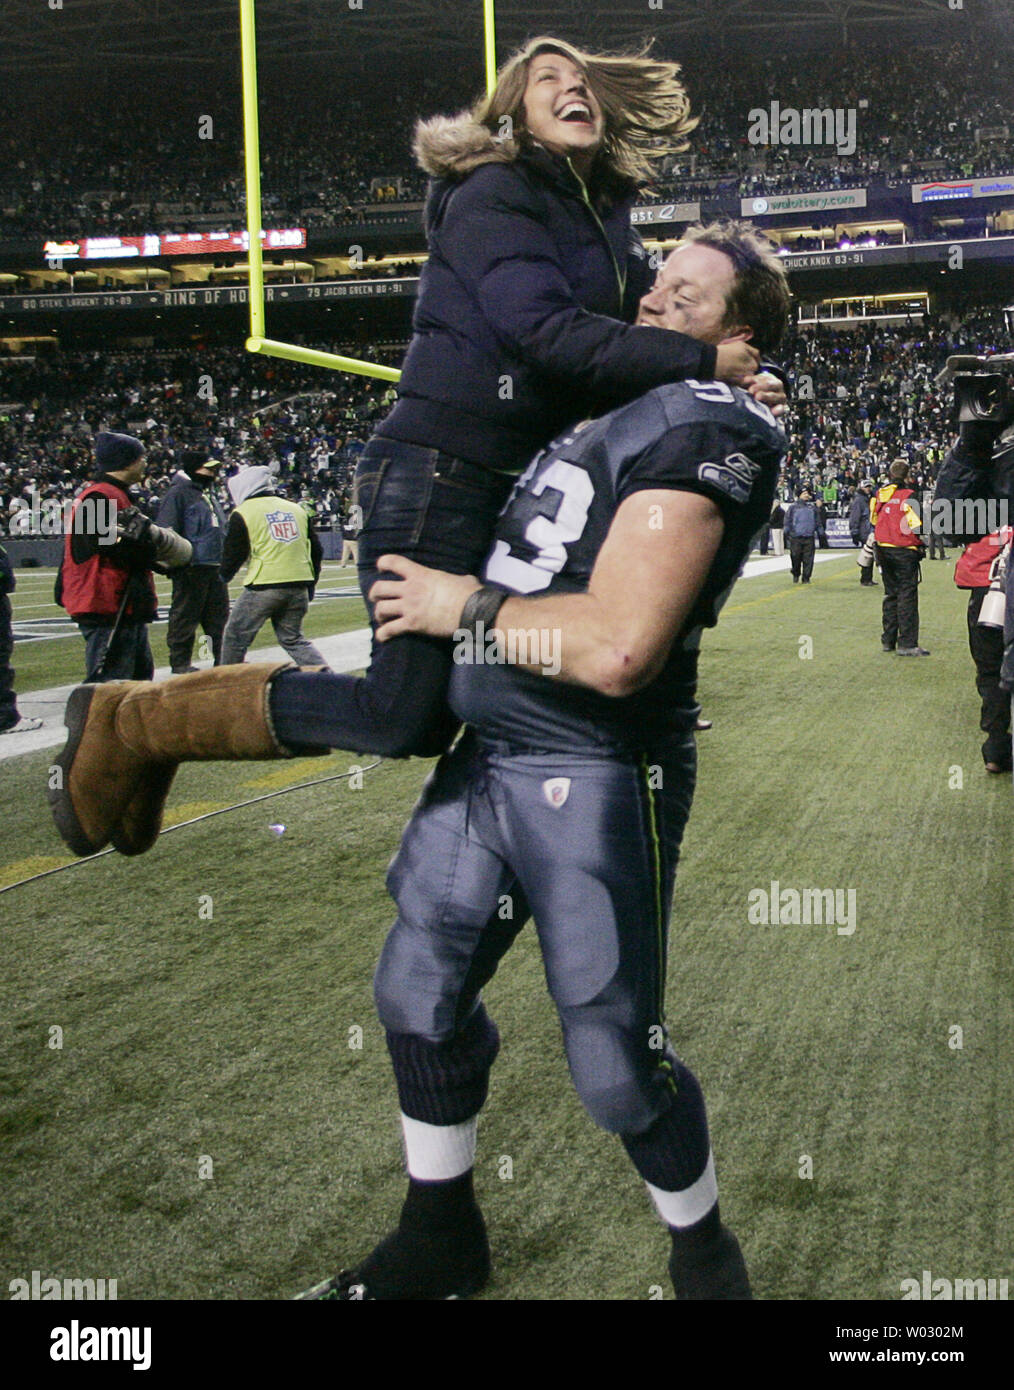 Seattle Seahawks defensive tackle Craig Terrill celebrates with his wife after their 41-36 win over the defending Super Bowl Champion New Orleans Saints in the NFC's wild-card playoff game on Saturday January 8, 2011 at Qwest Field in Seattle.    (UPI /Jim Bryant) Stock Photo